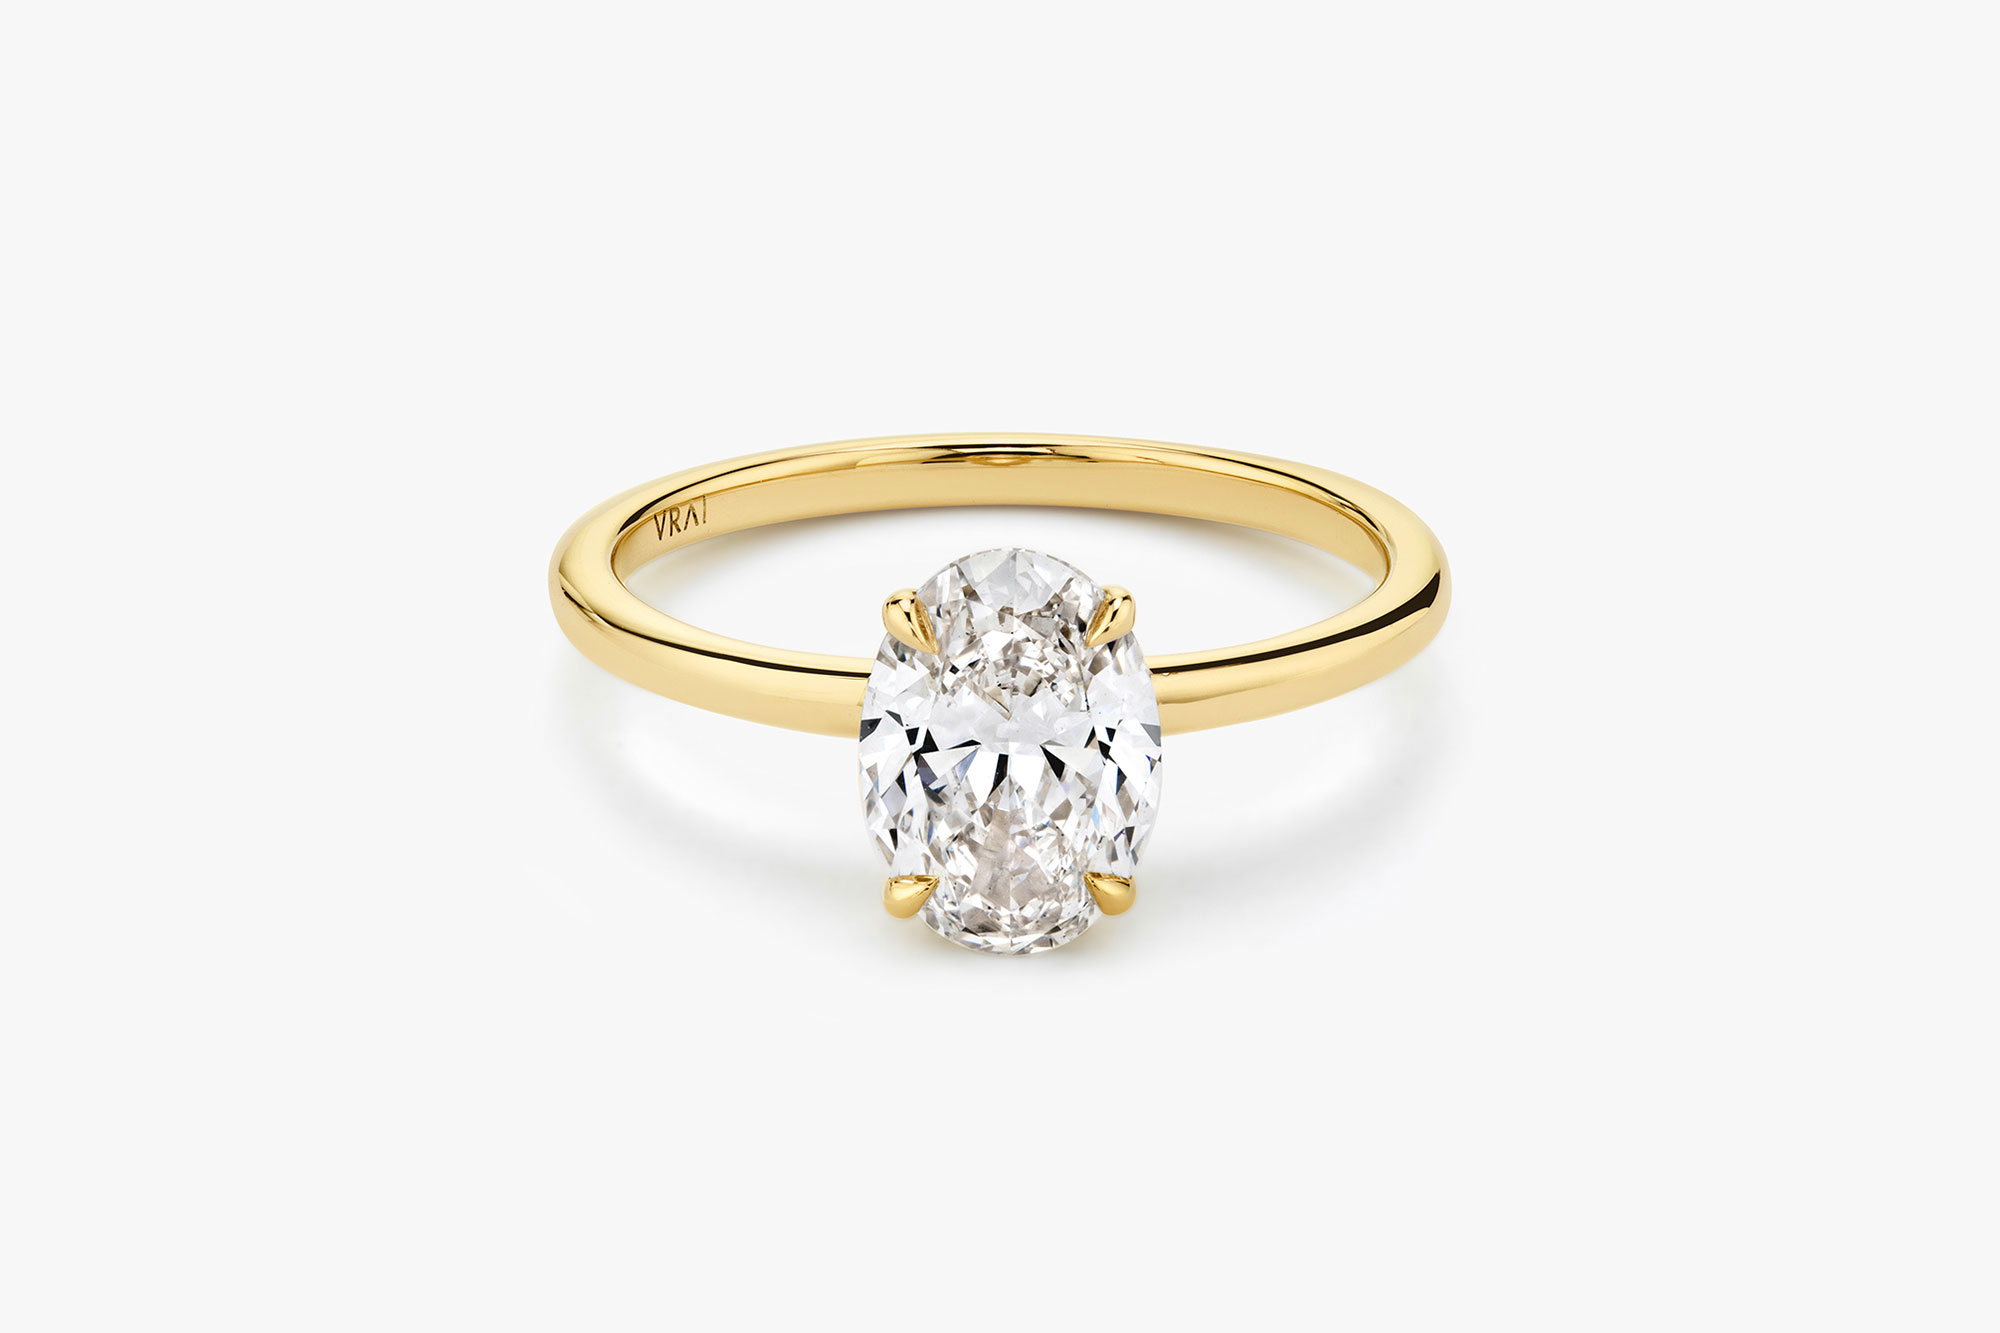 The Signature solitaire ring in 18k yellow gold with an oval cut diamond